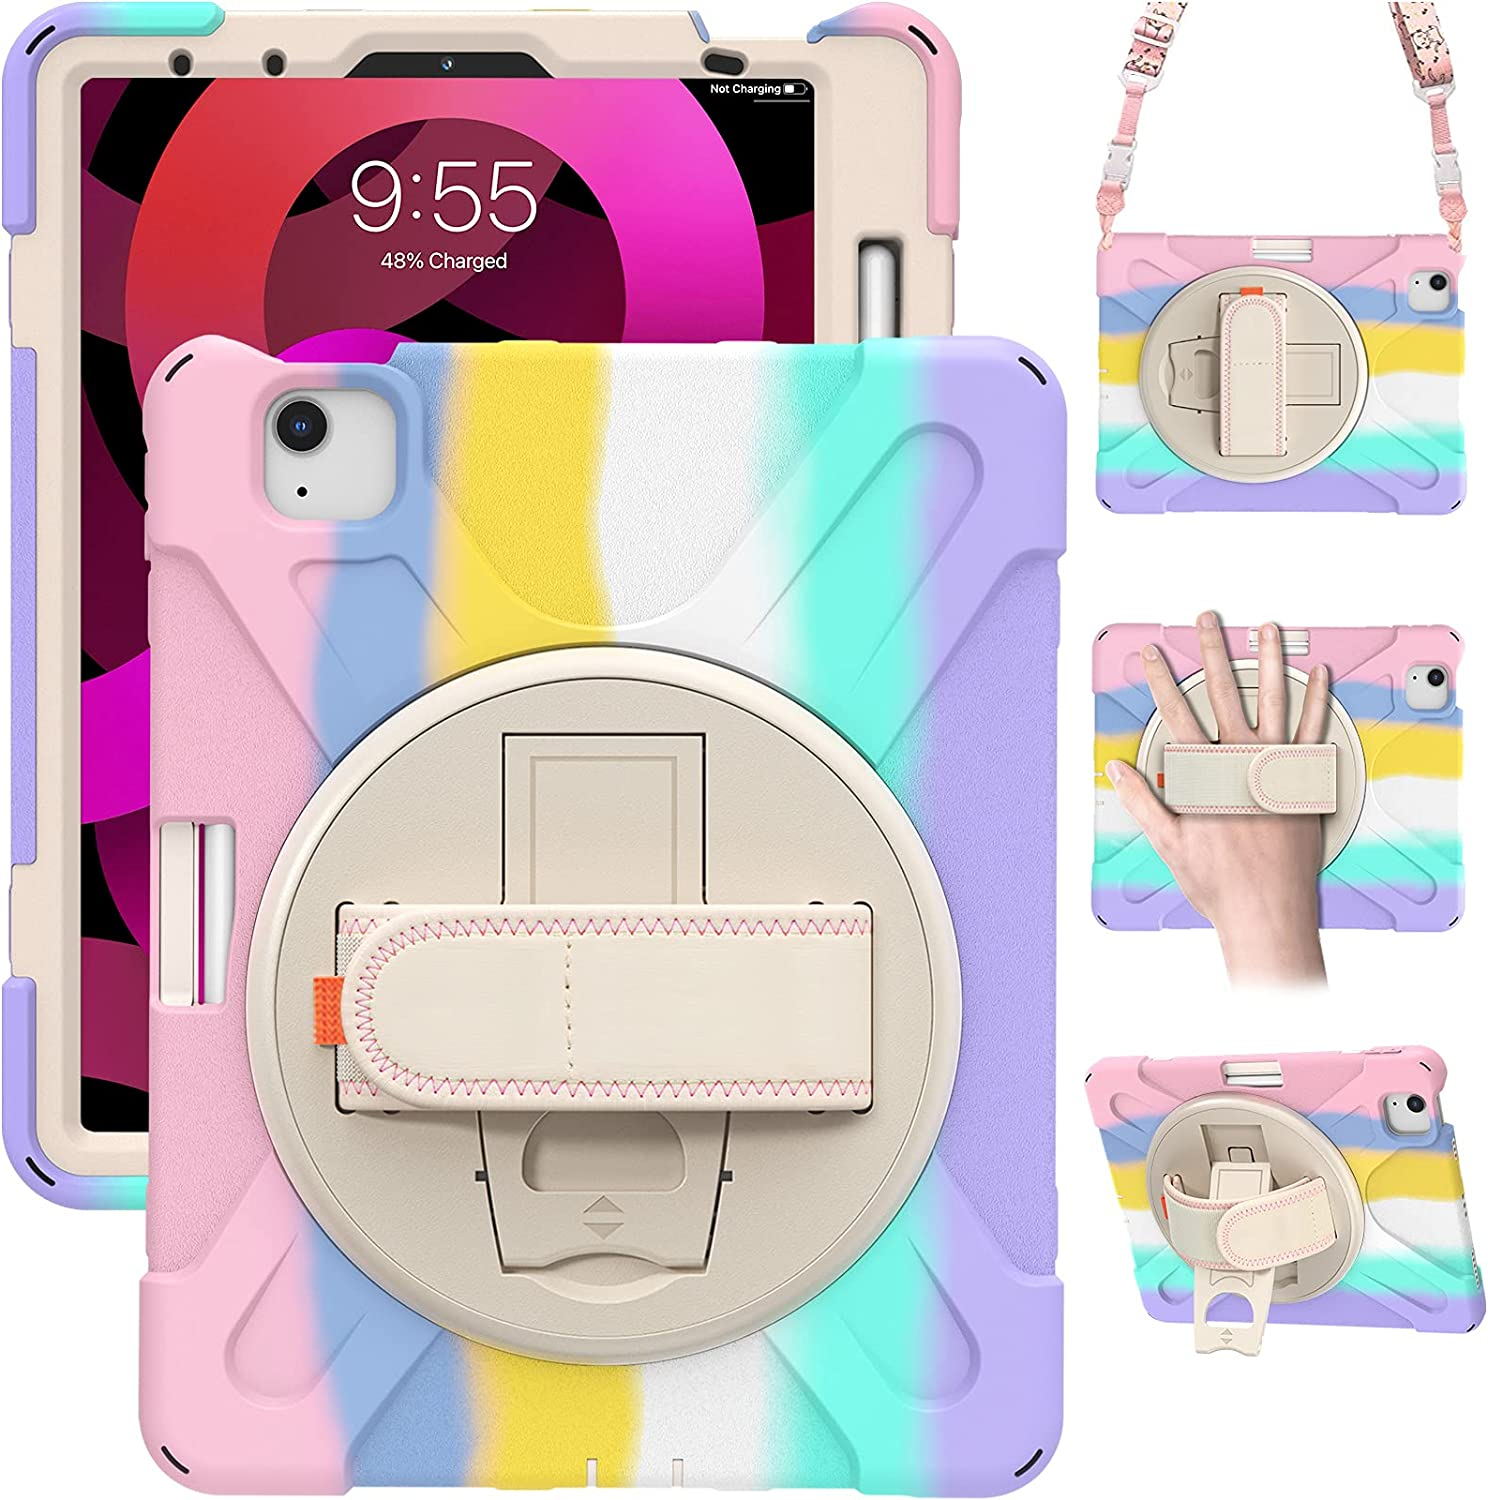 TSQQST iPad Air 4th Generation Case for Kids Girls 2020   iPad Pro 11 Inch Case 2nd Generation 2020/2018 Colorful Cute   iPad Air 4 10.9